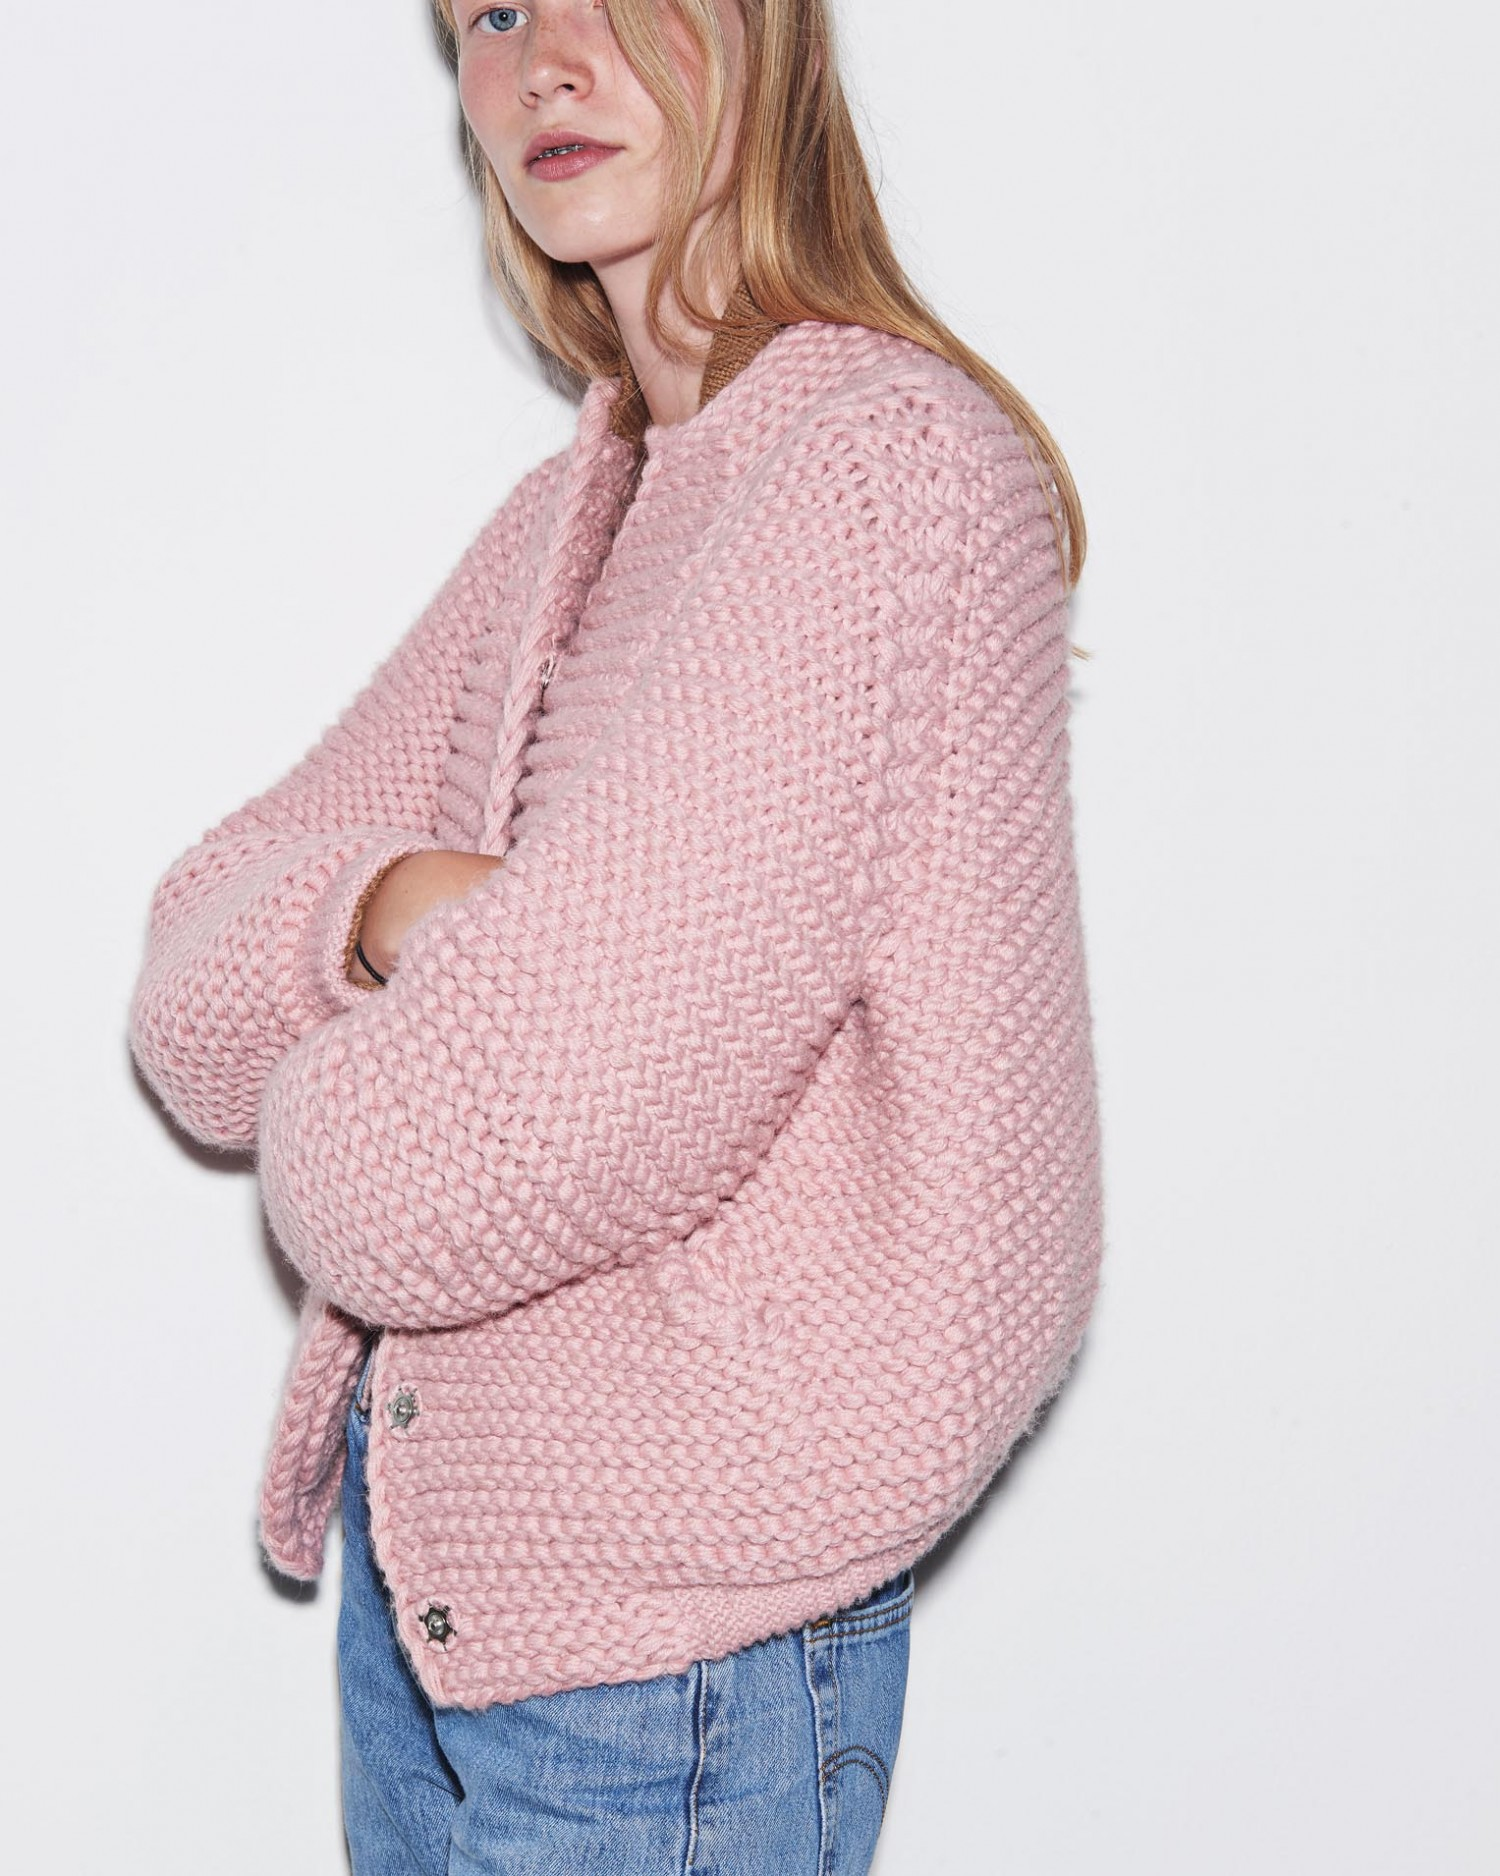 The heavy knitted bumber jacket, that has become an icon for Carcel.